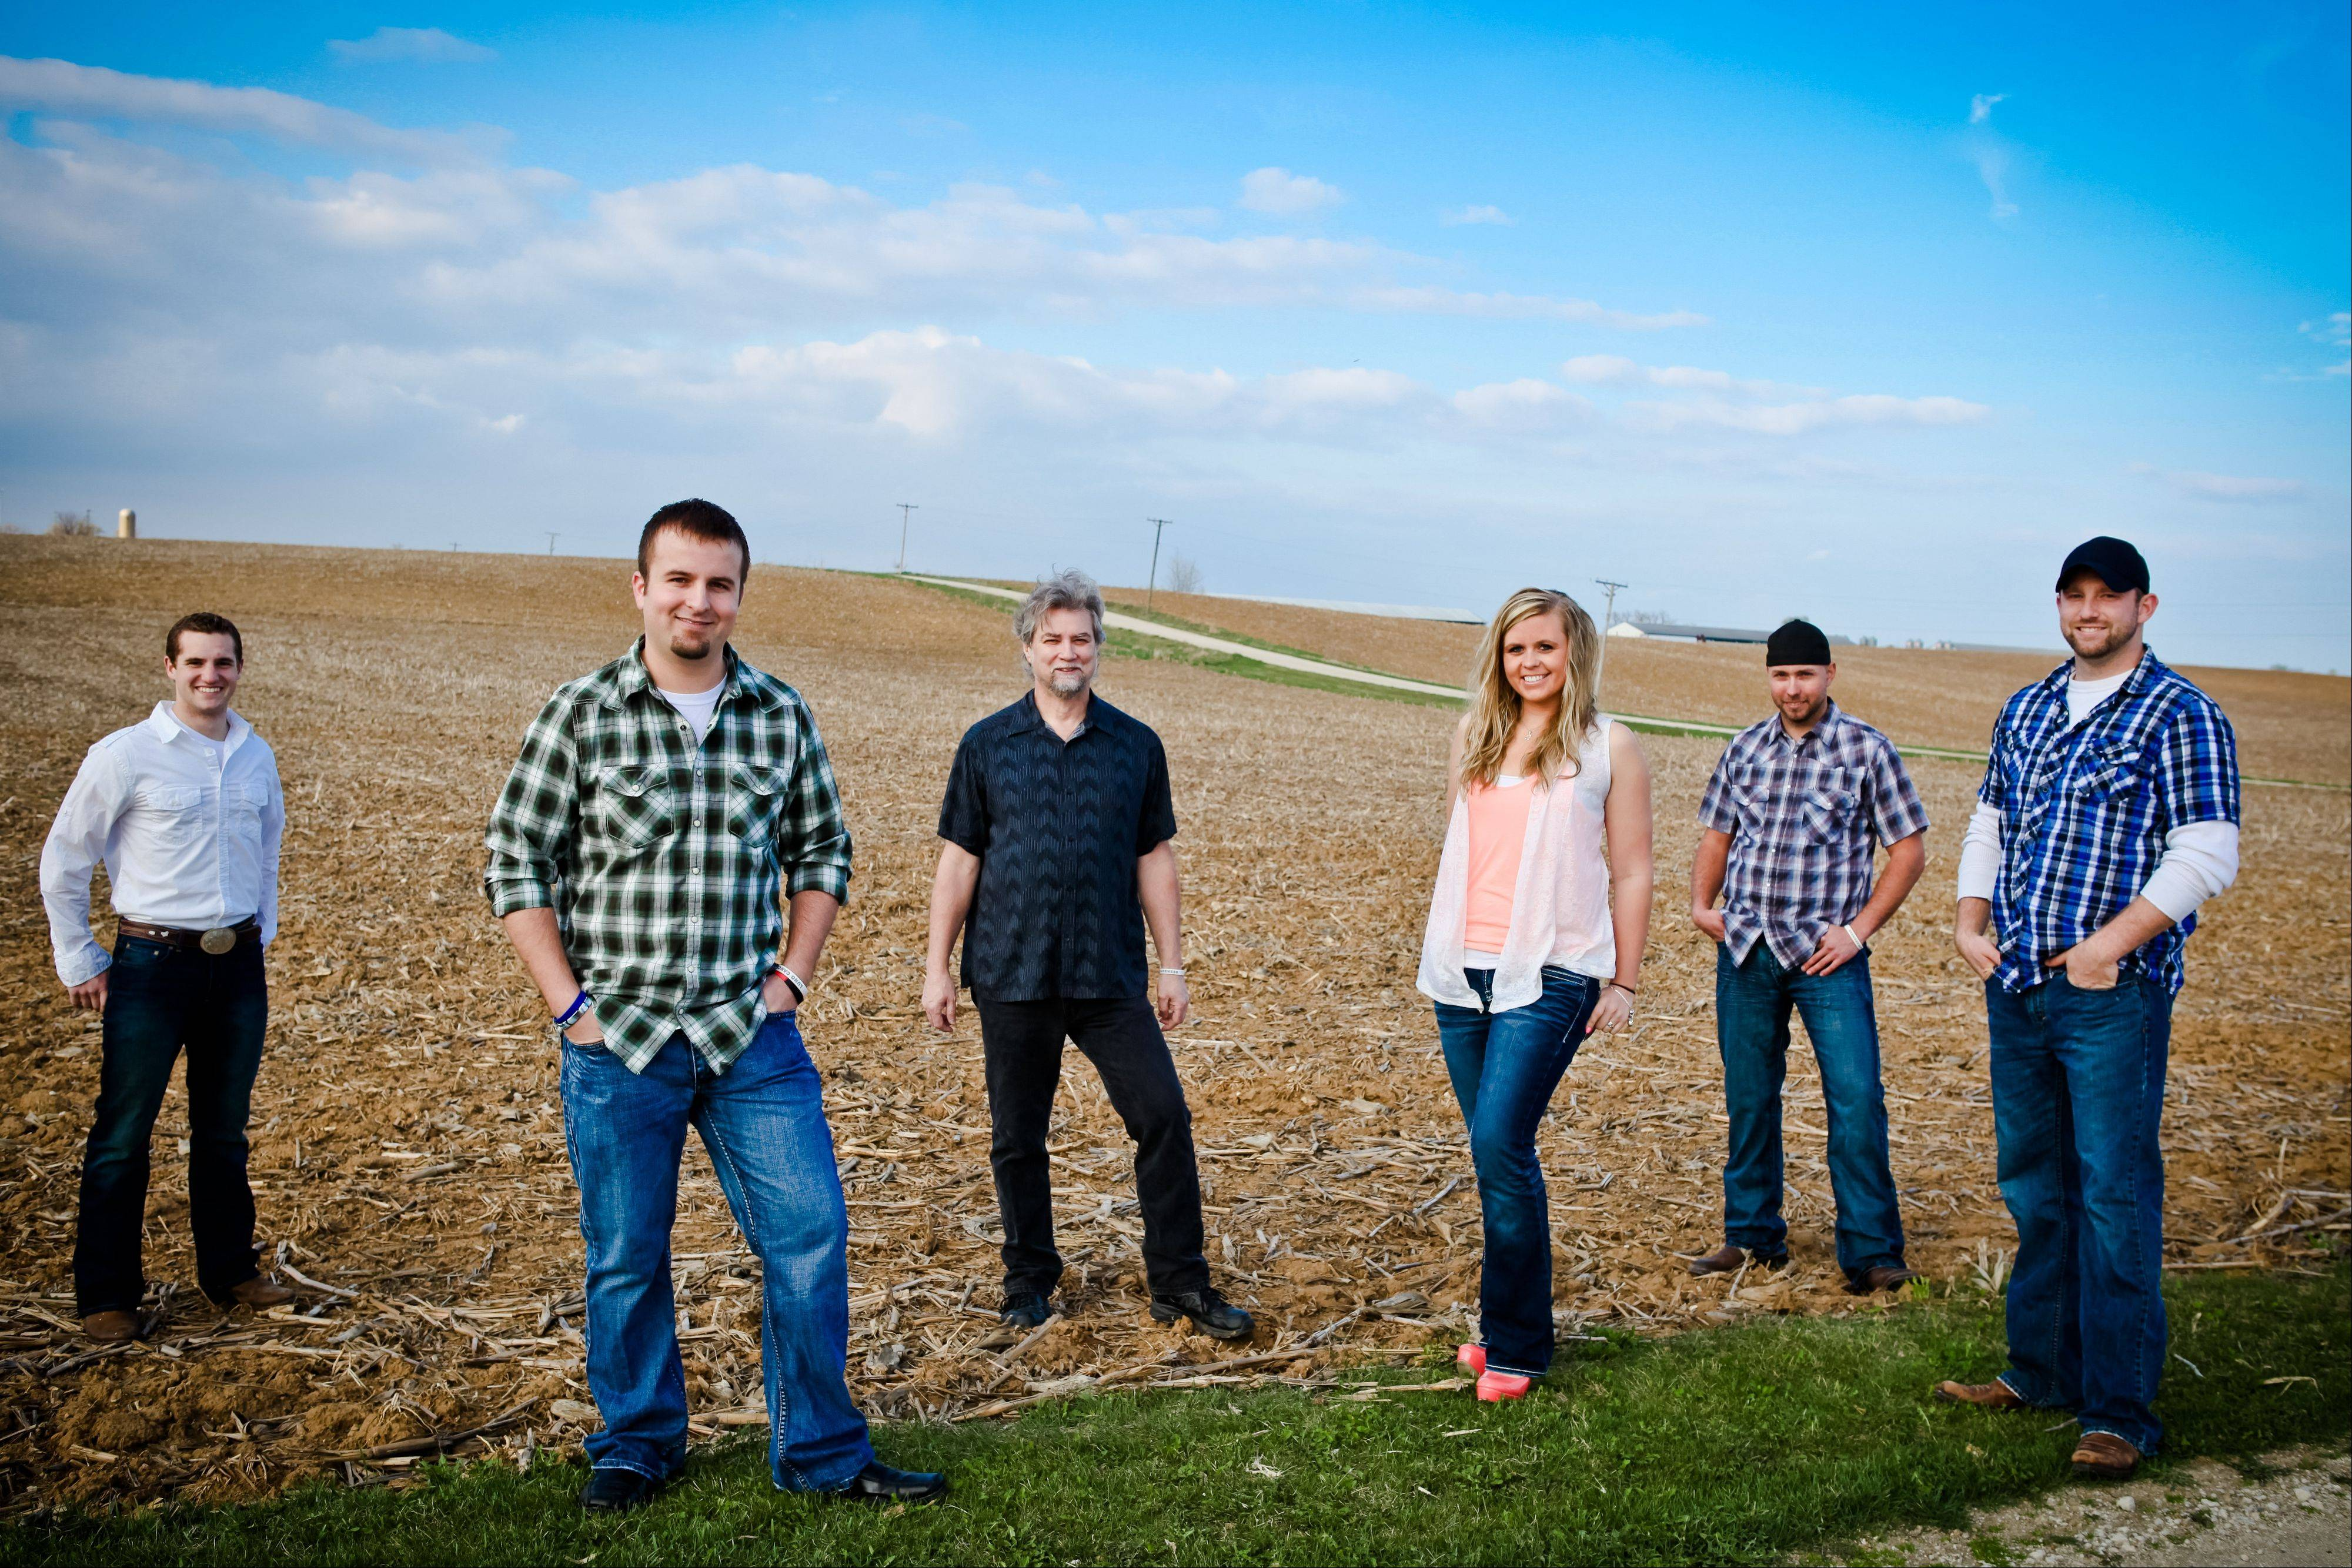 Back Country Roads plays Top 40 country covers and a few originals. The group will be at the DuPage County Fair from 6:30 to 9:30 p.m. Friday, July 27, as part of the Spirits of DuPage event.